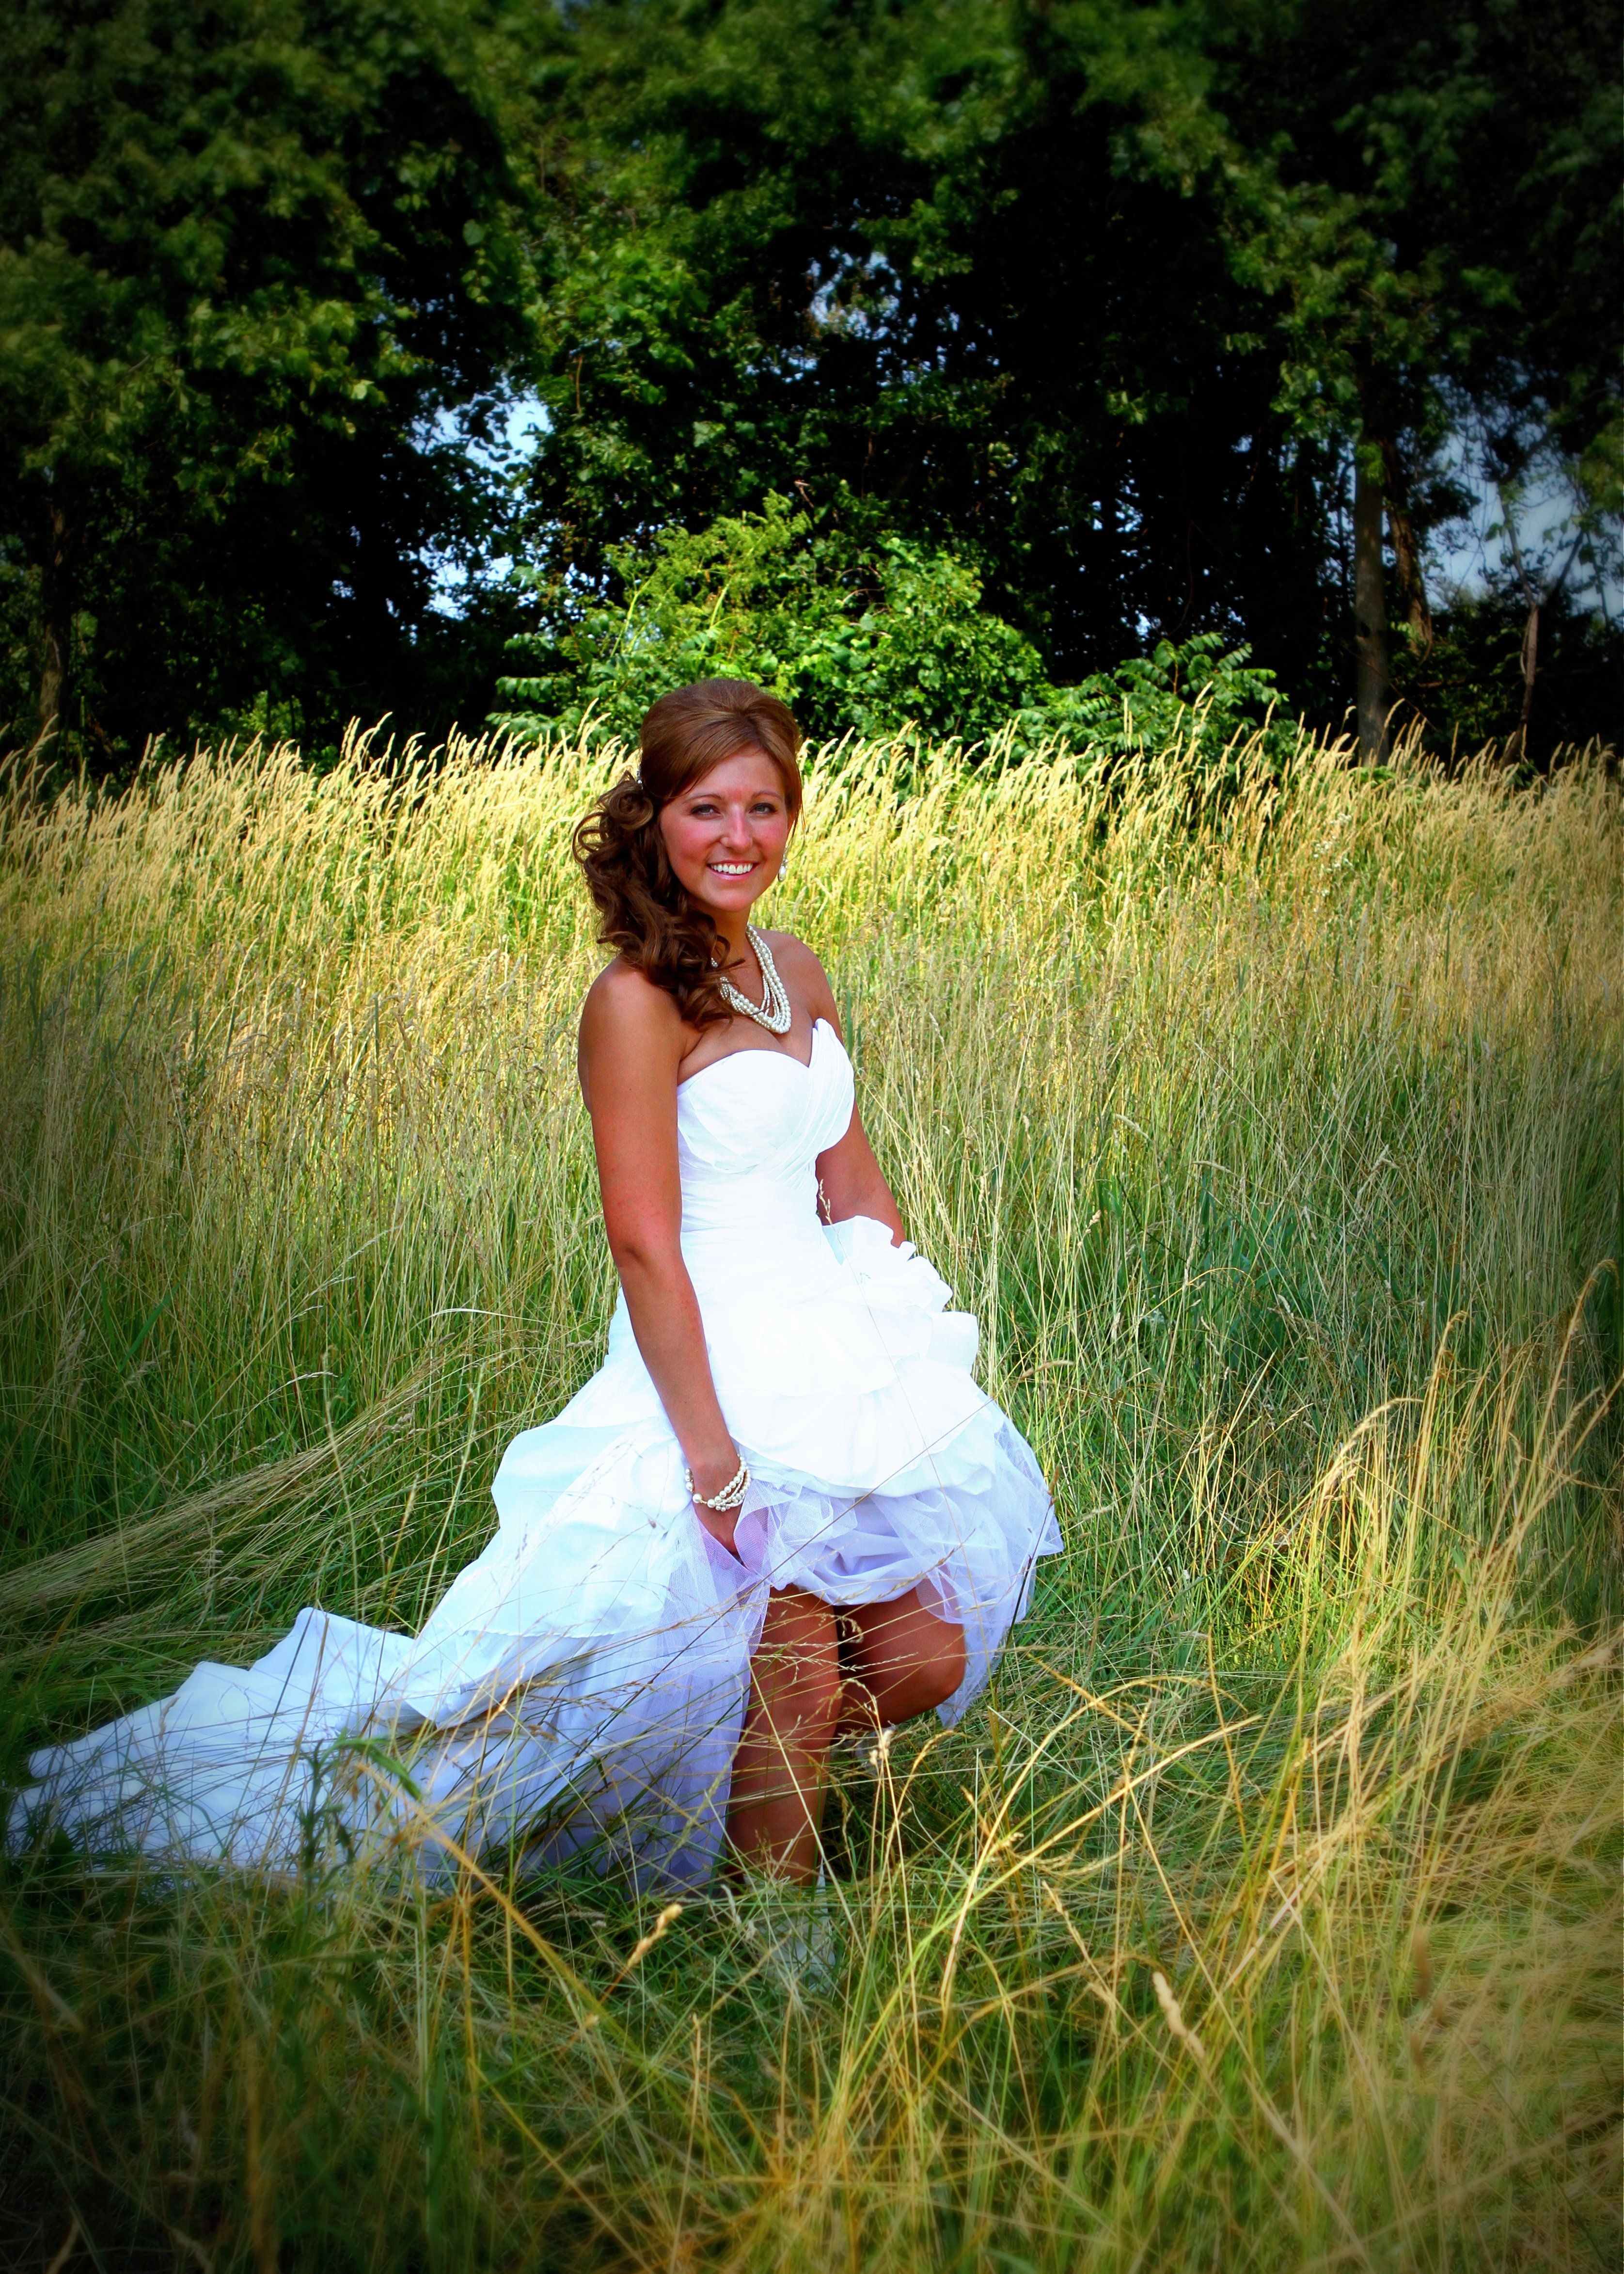 Country wedding dress love the simple grass background Simple country wedding dress ideas